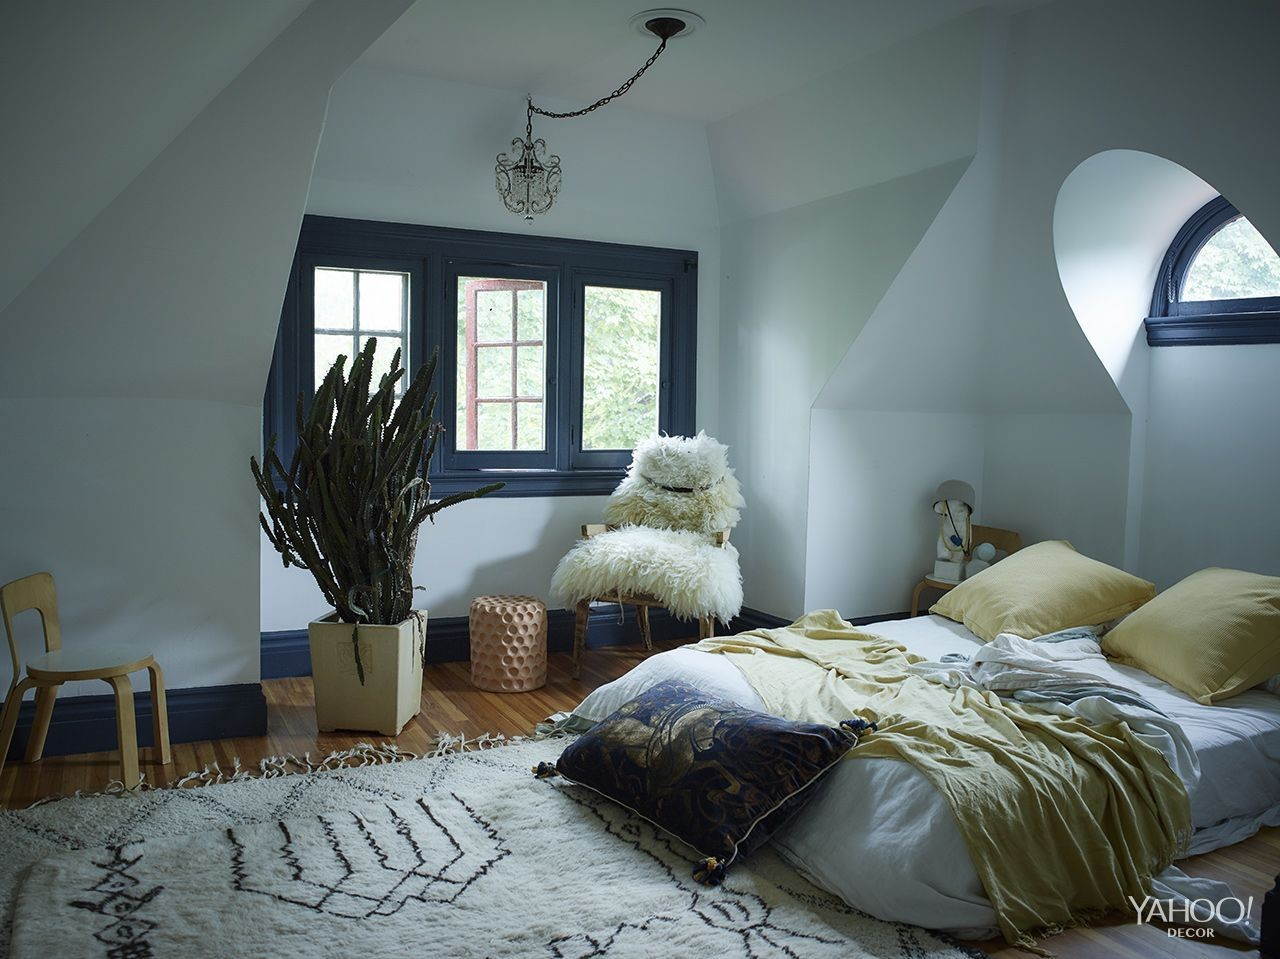 Heads up design fans yahoo decor is in the house tastemakers on social media lonny - Winter bedroom decor ...